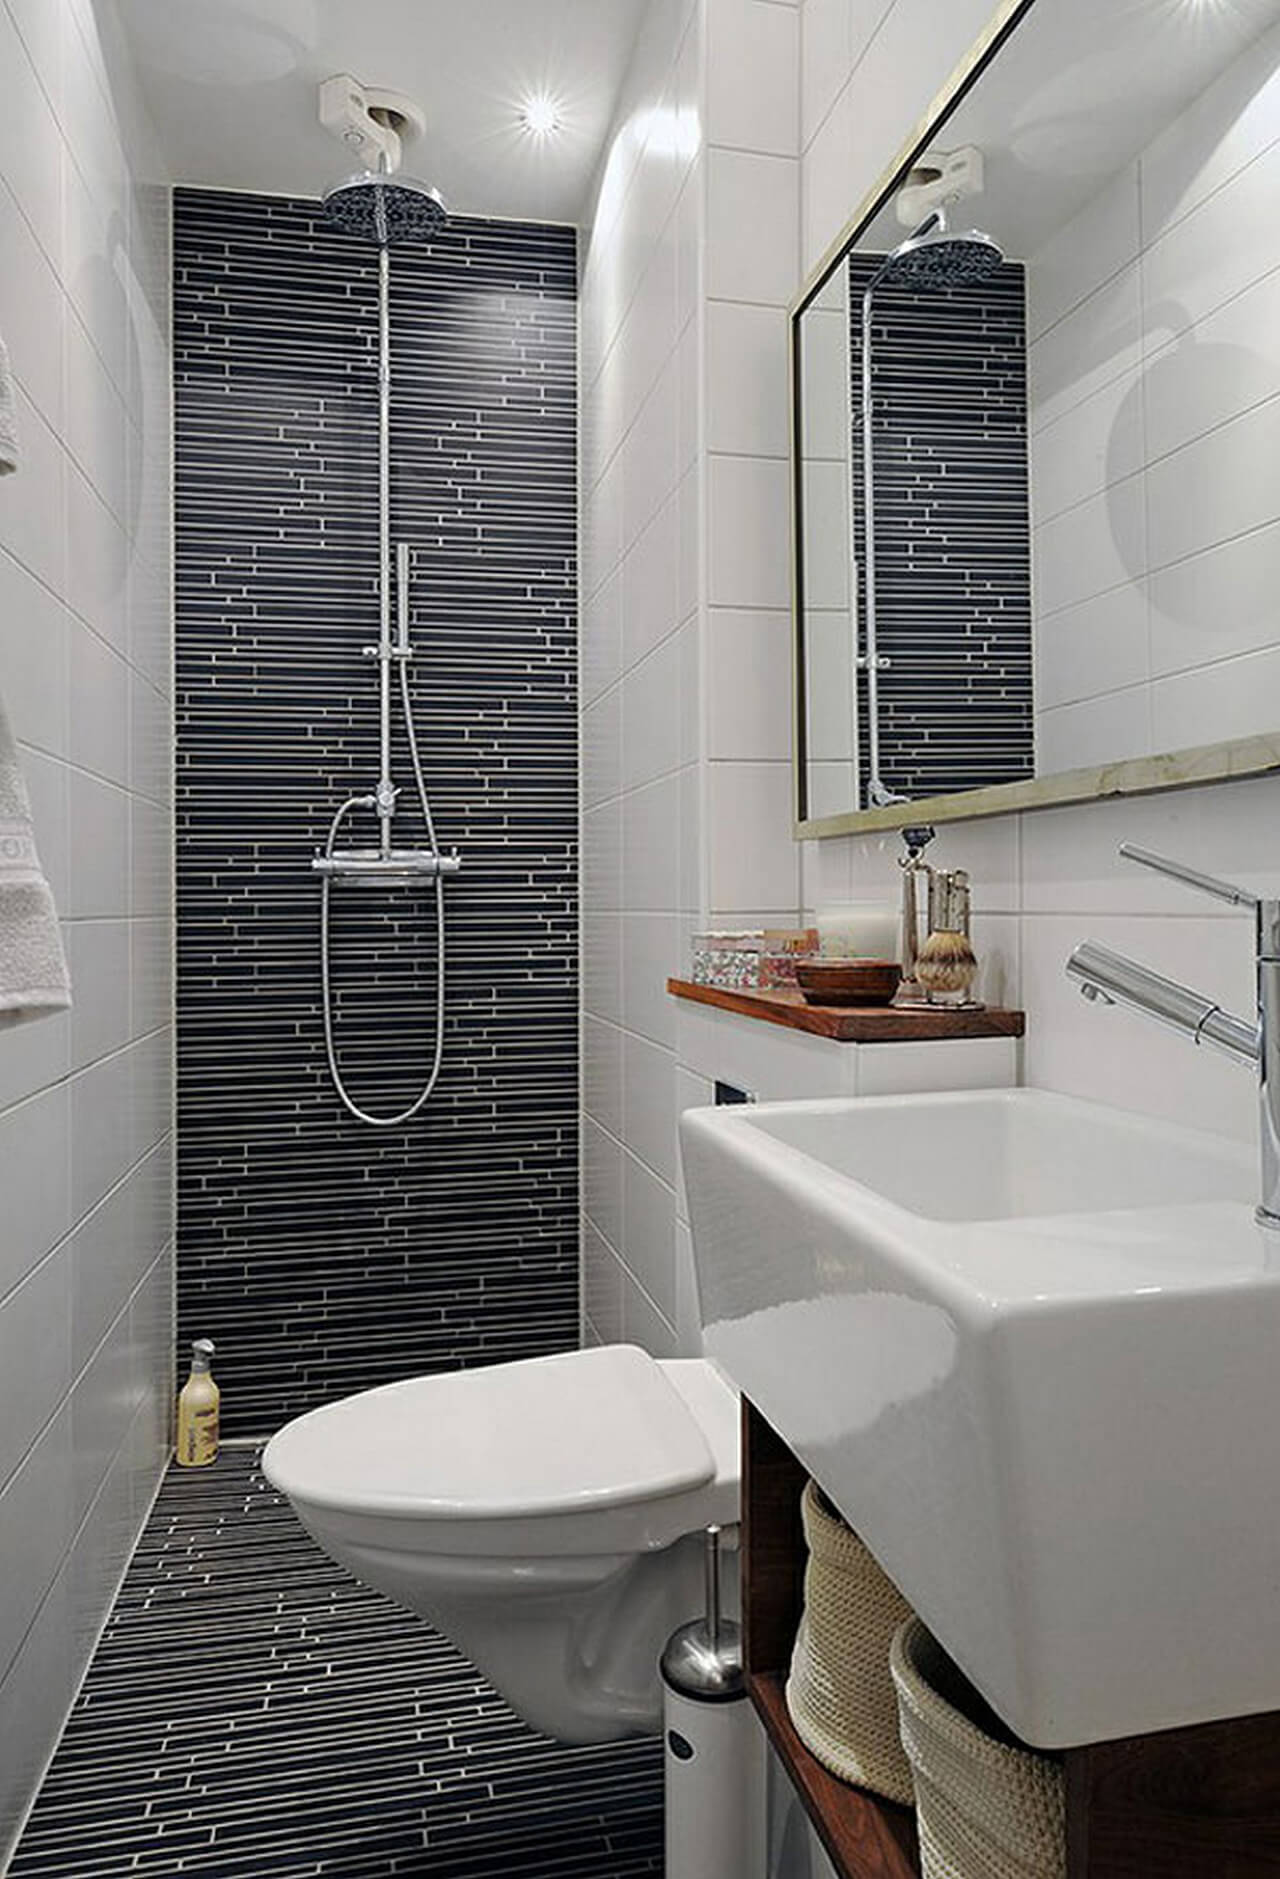 29. Curtain Free Wet Room With Modern Tiles